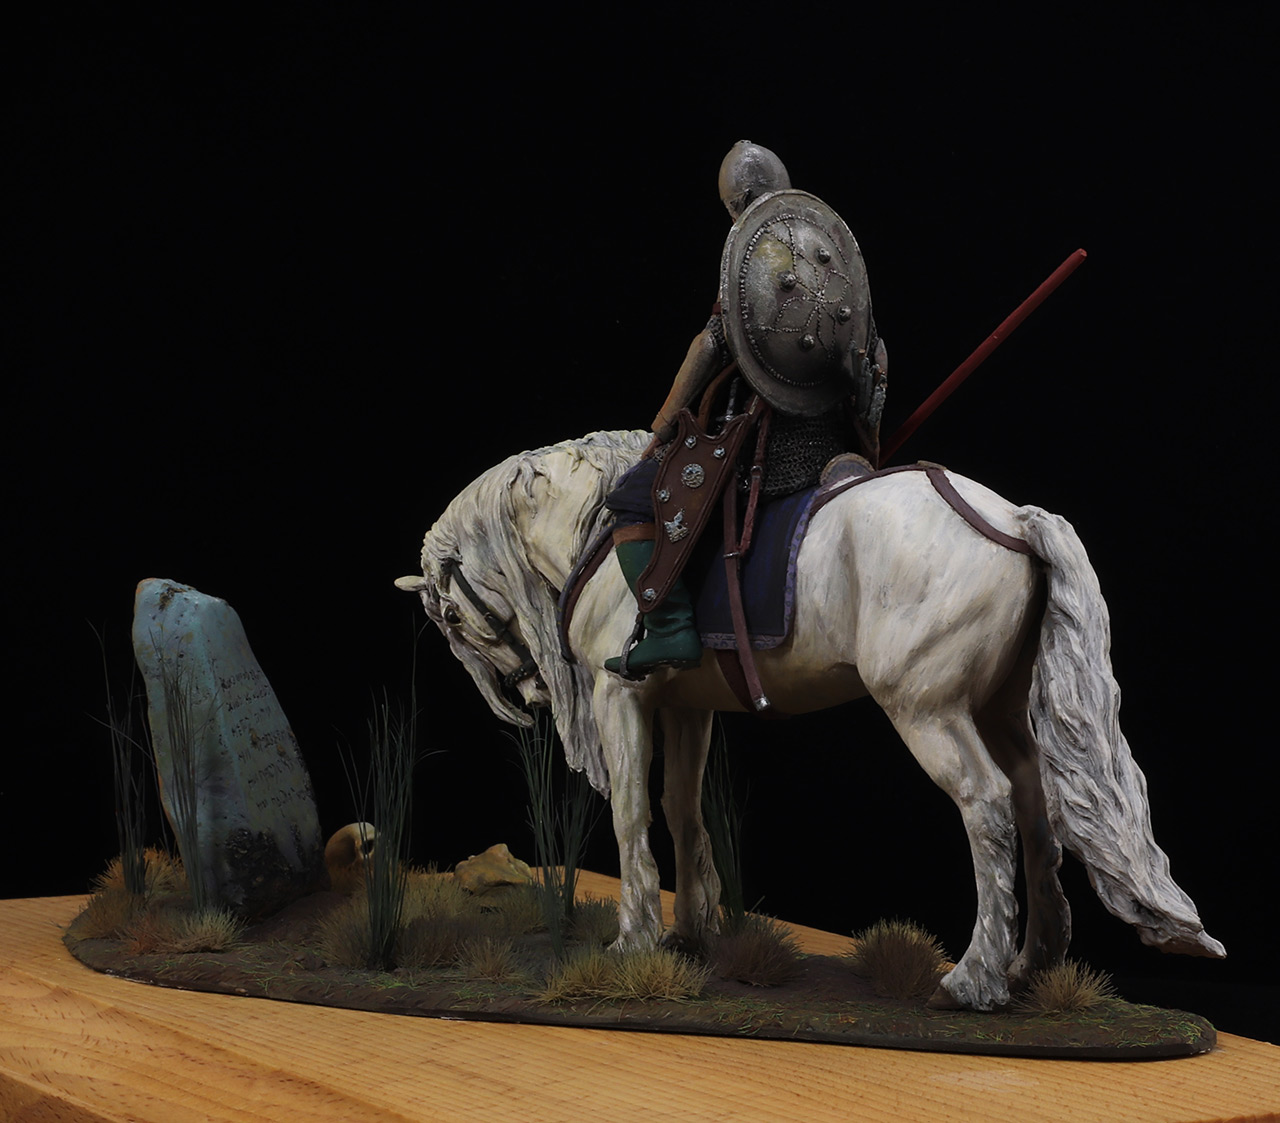 Dioramas and Vignettes: The Crossroad, photo #4